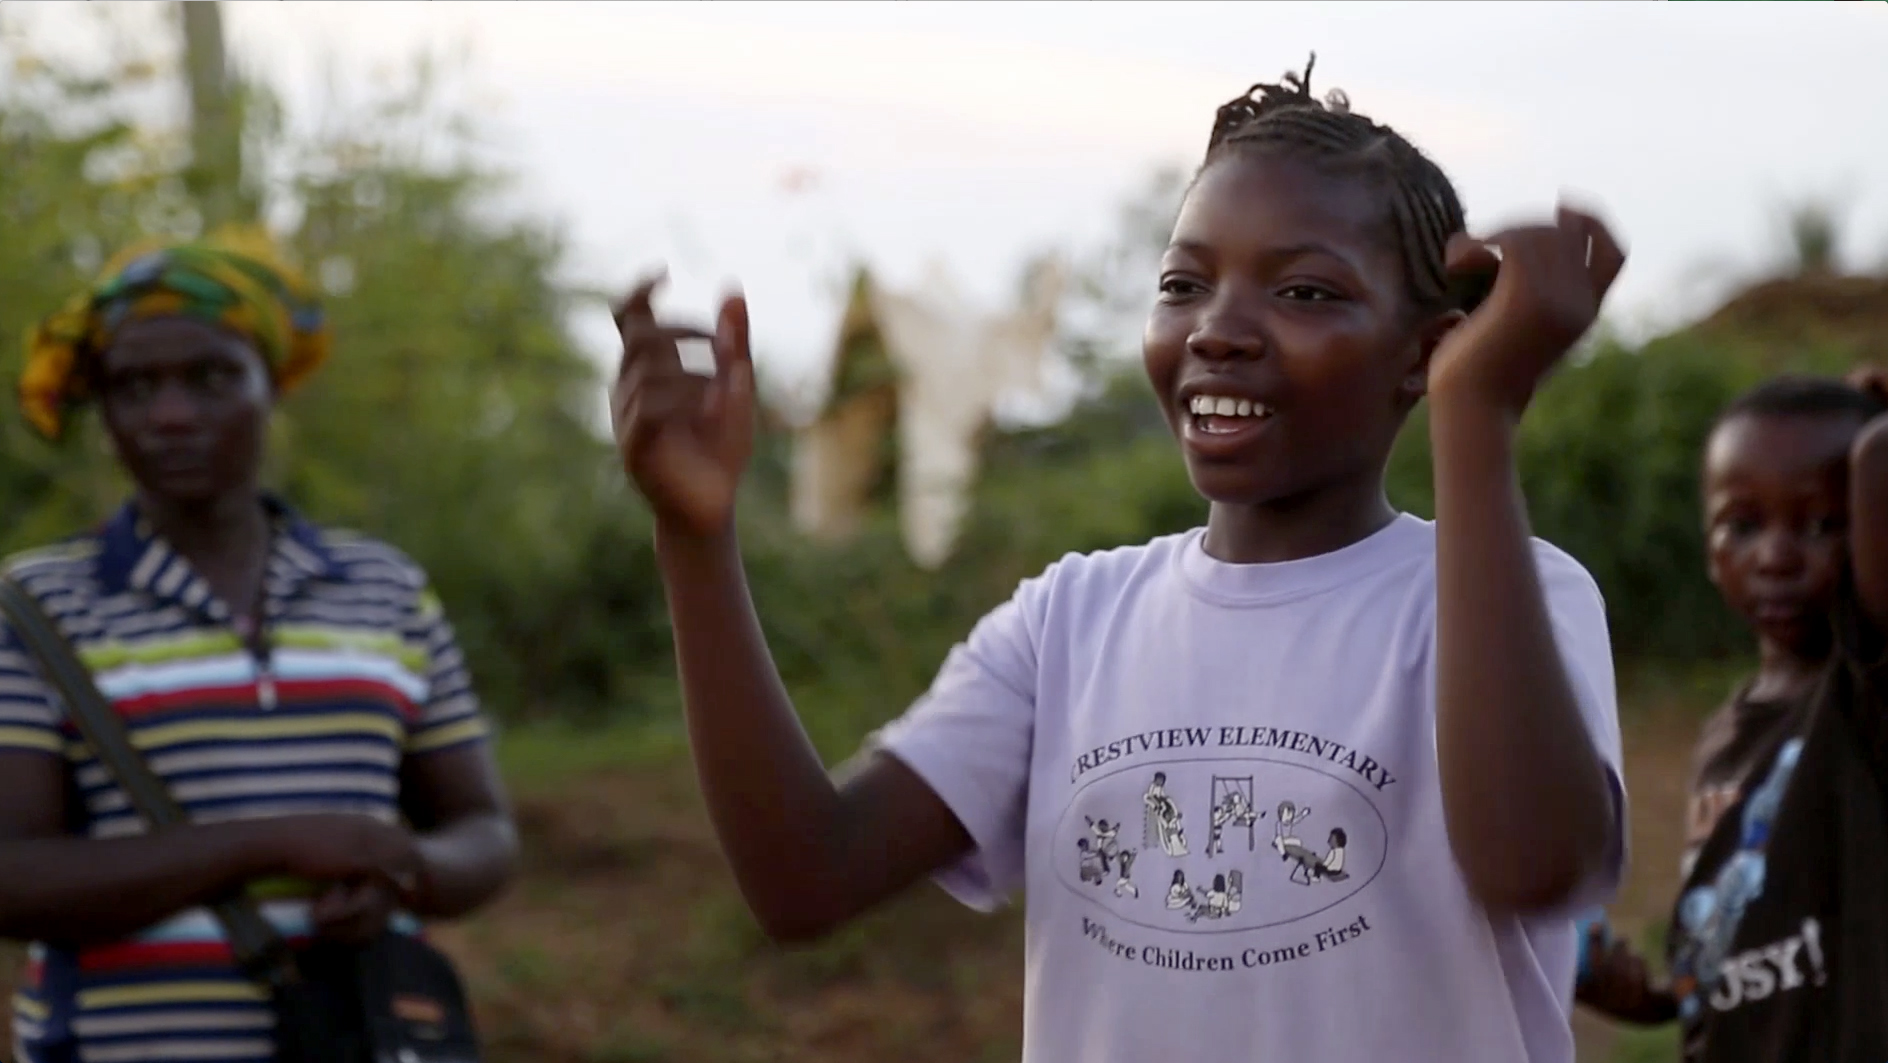 Leone, A 14-Year-Old Ebola Survivor Speaks Out (VIDEO) | UNICEF USA